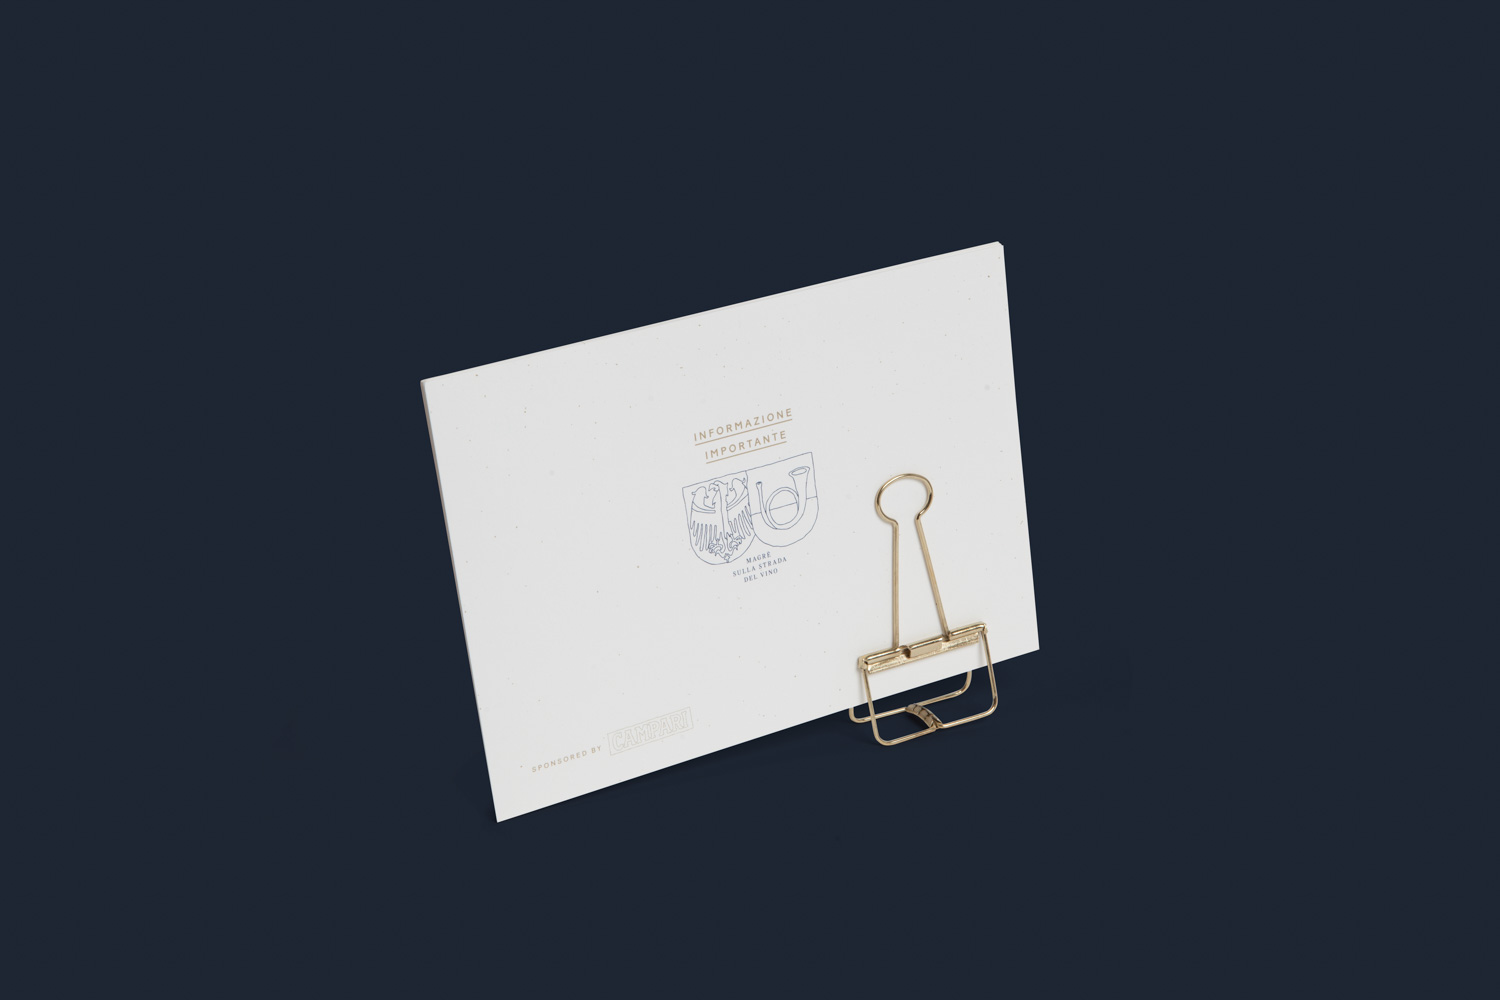 Büro Rabensteiner – IXM Wedding Invitation